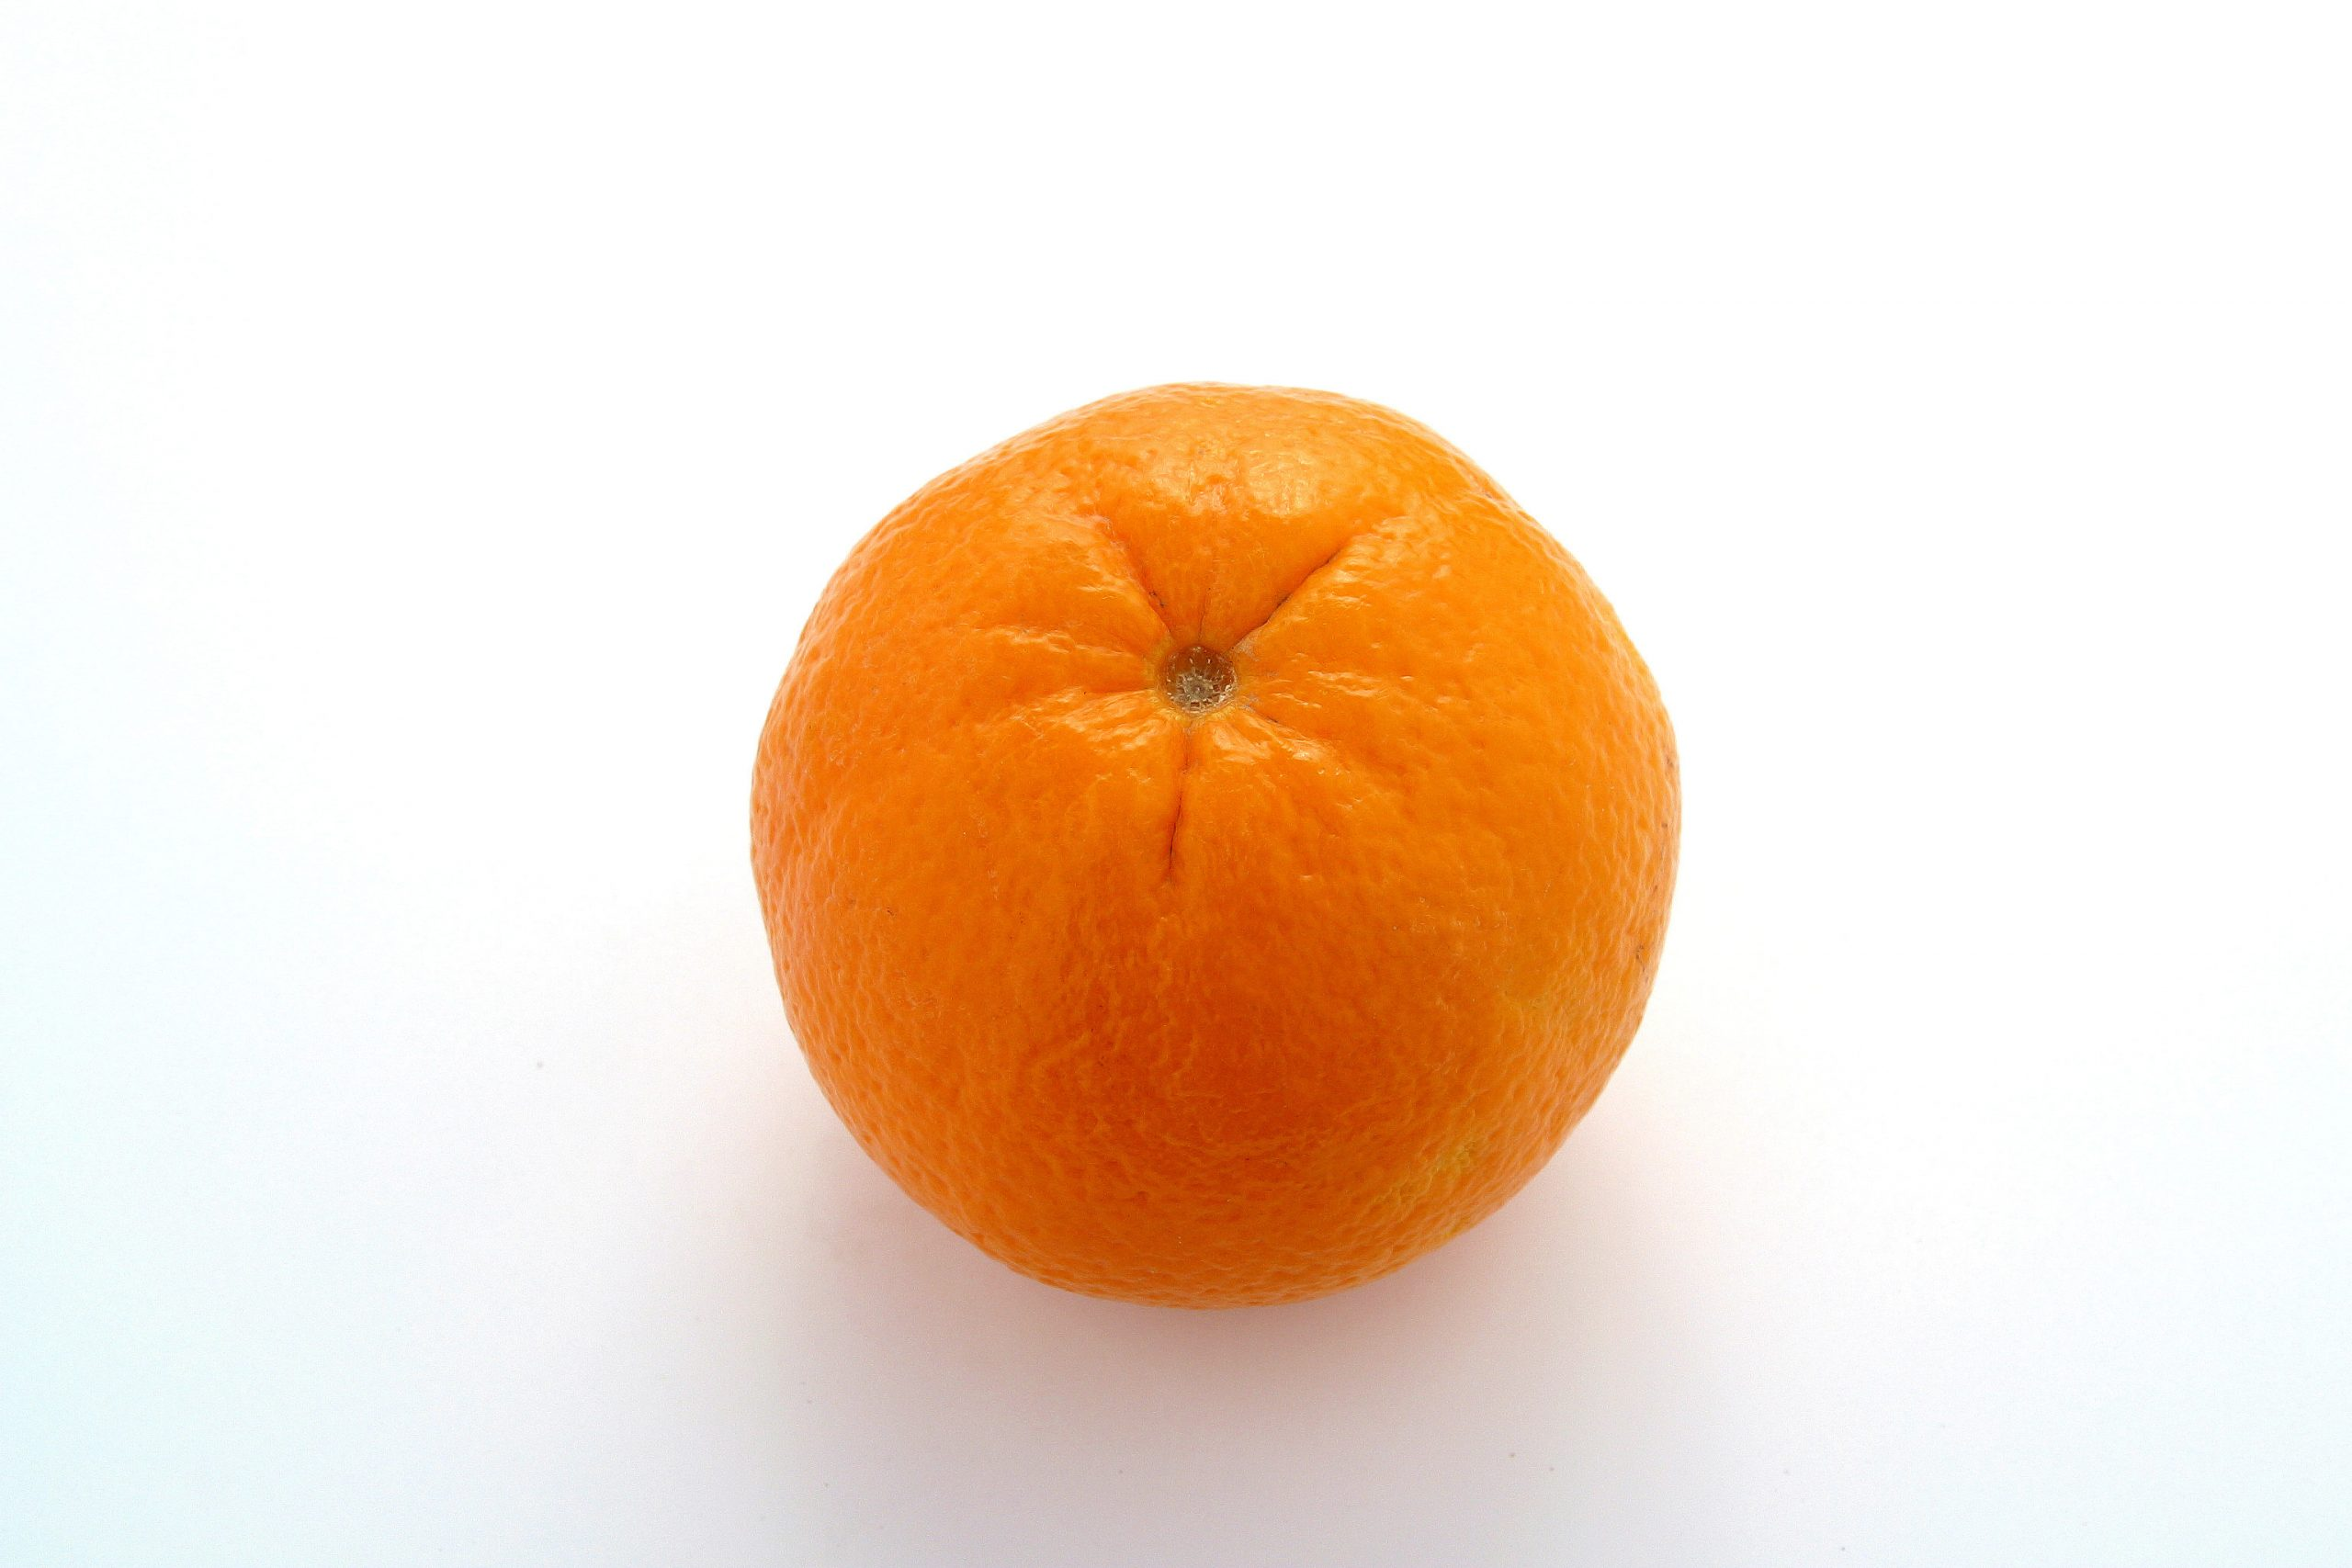 'Easy peelers' (such as tangerines, clementines and satsumas) account for more than half of all citrus fruit sold in UK supermarkets, Kantar Worldpanel data shows.